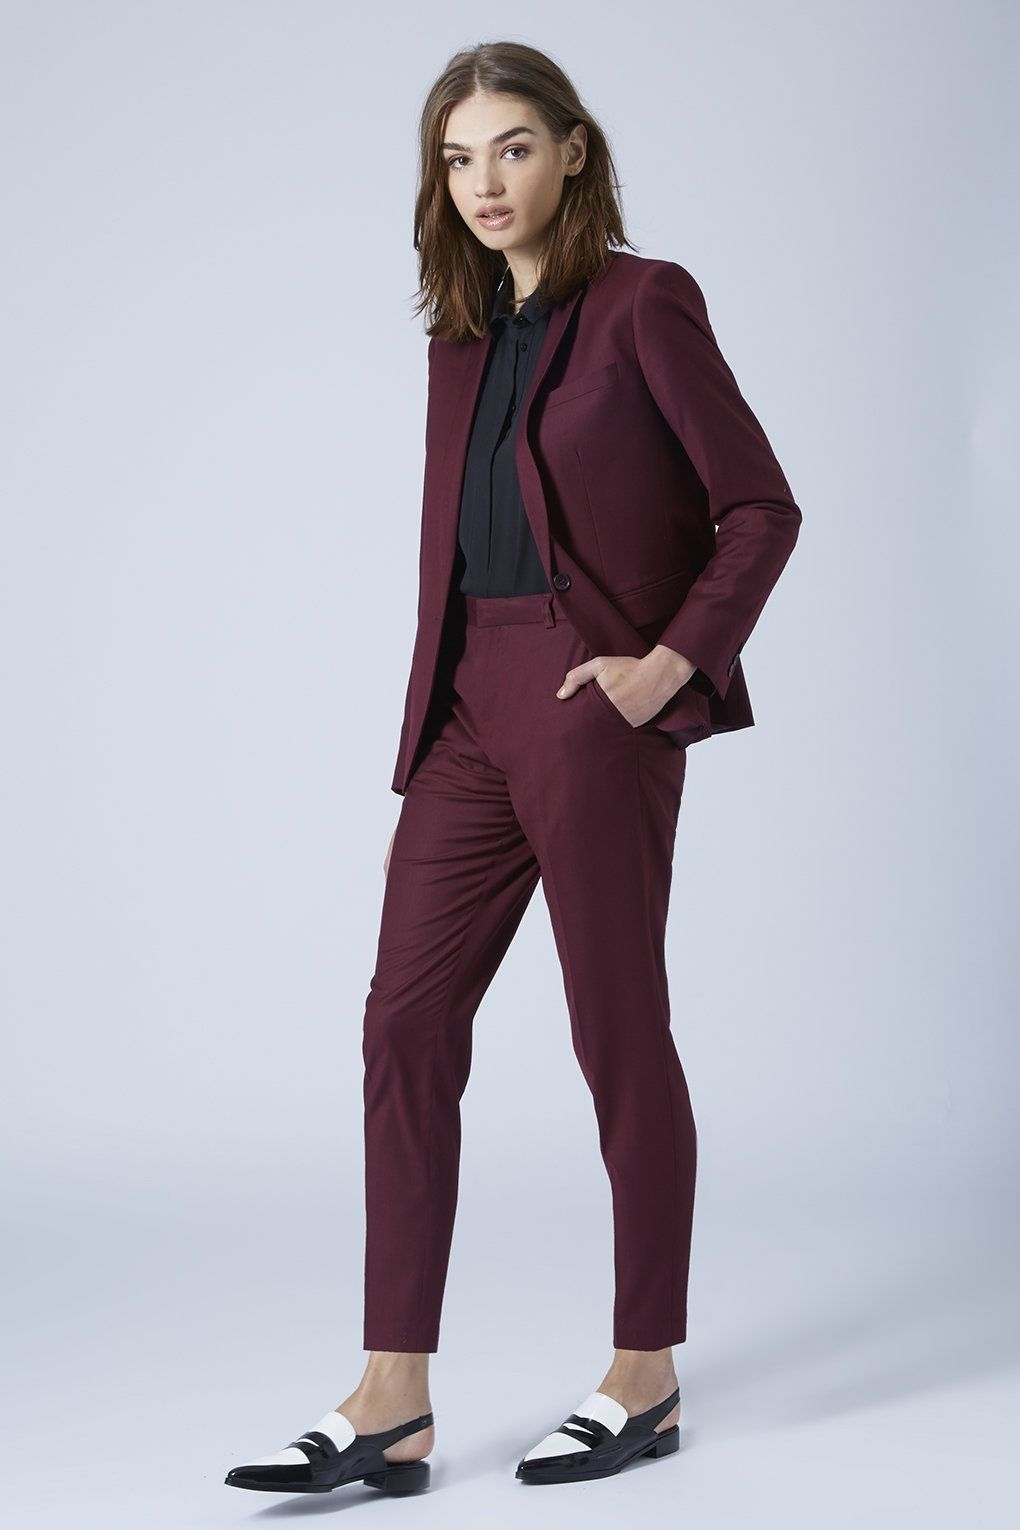 Knowing That Emma Might Like A Suit Rather Than A Dress Womens Dress Suits Elegant Pants Suits Womens Suits Business